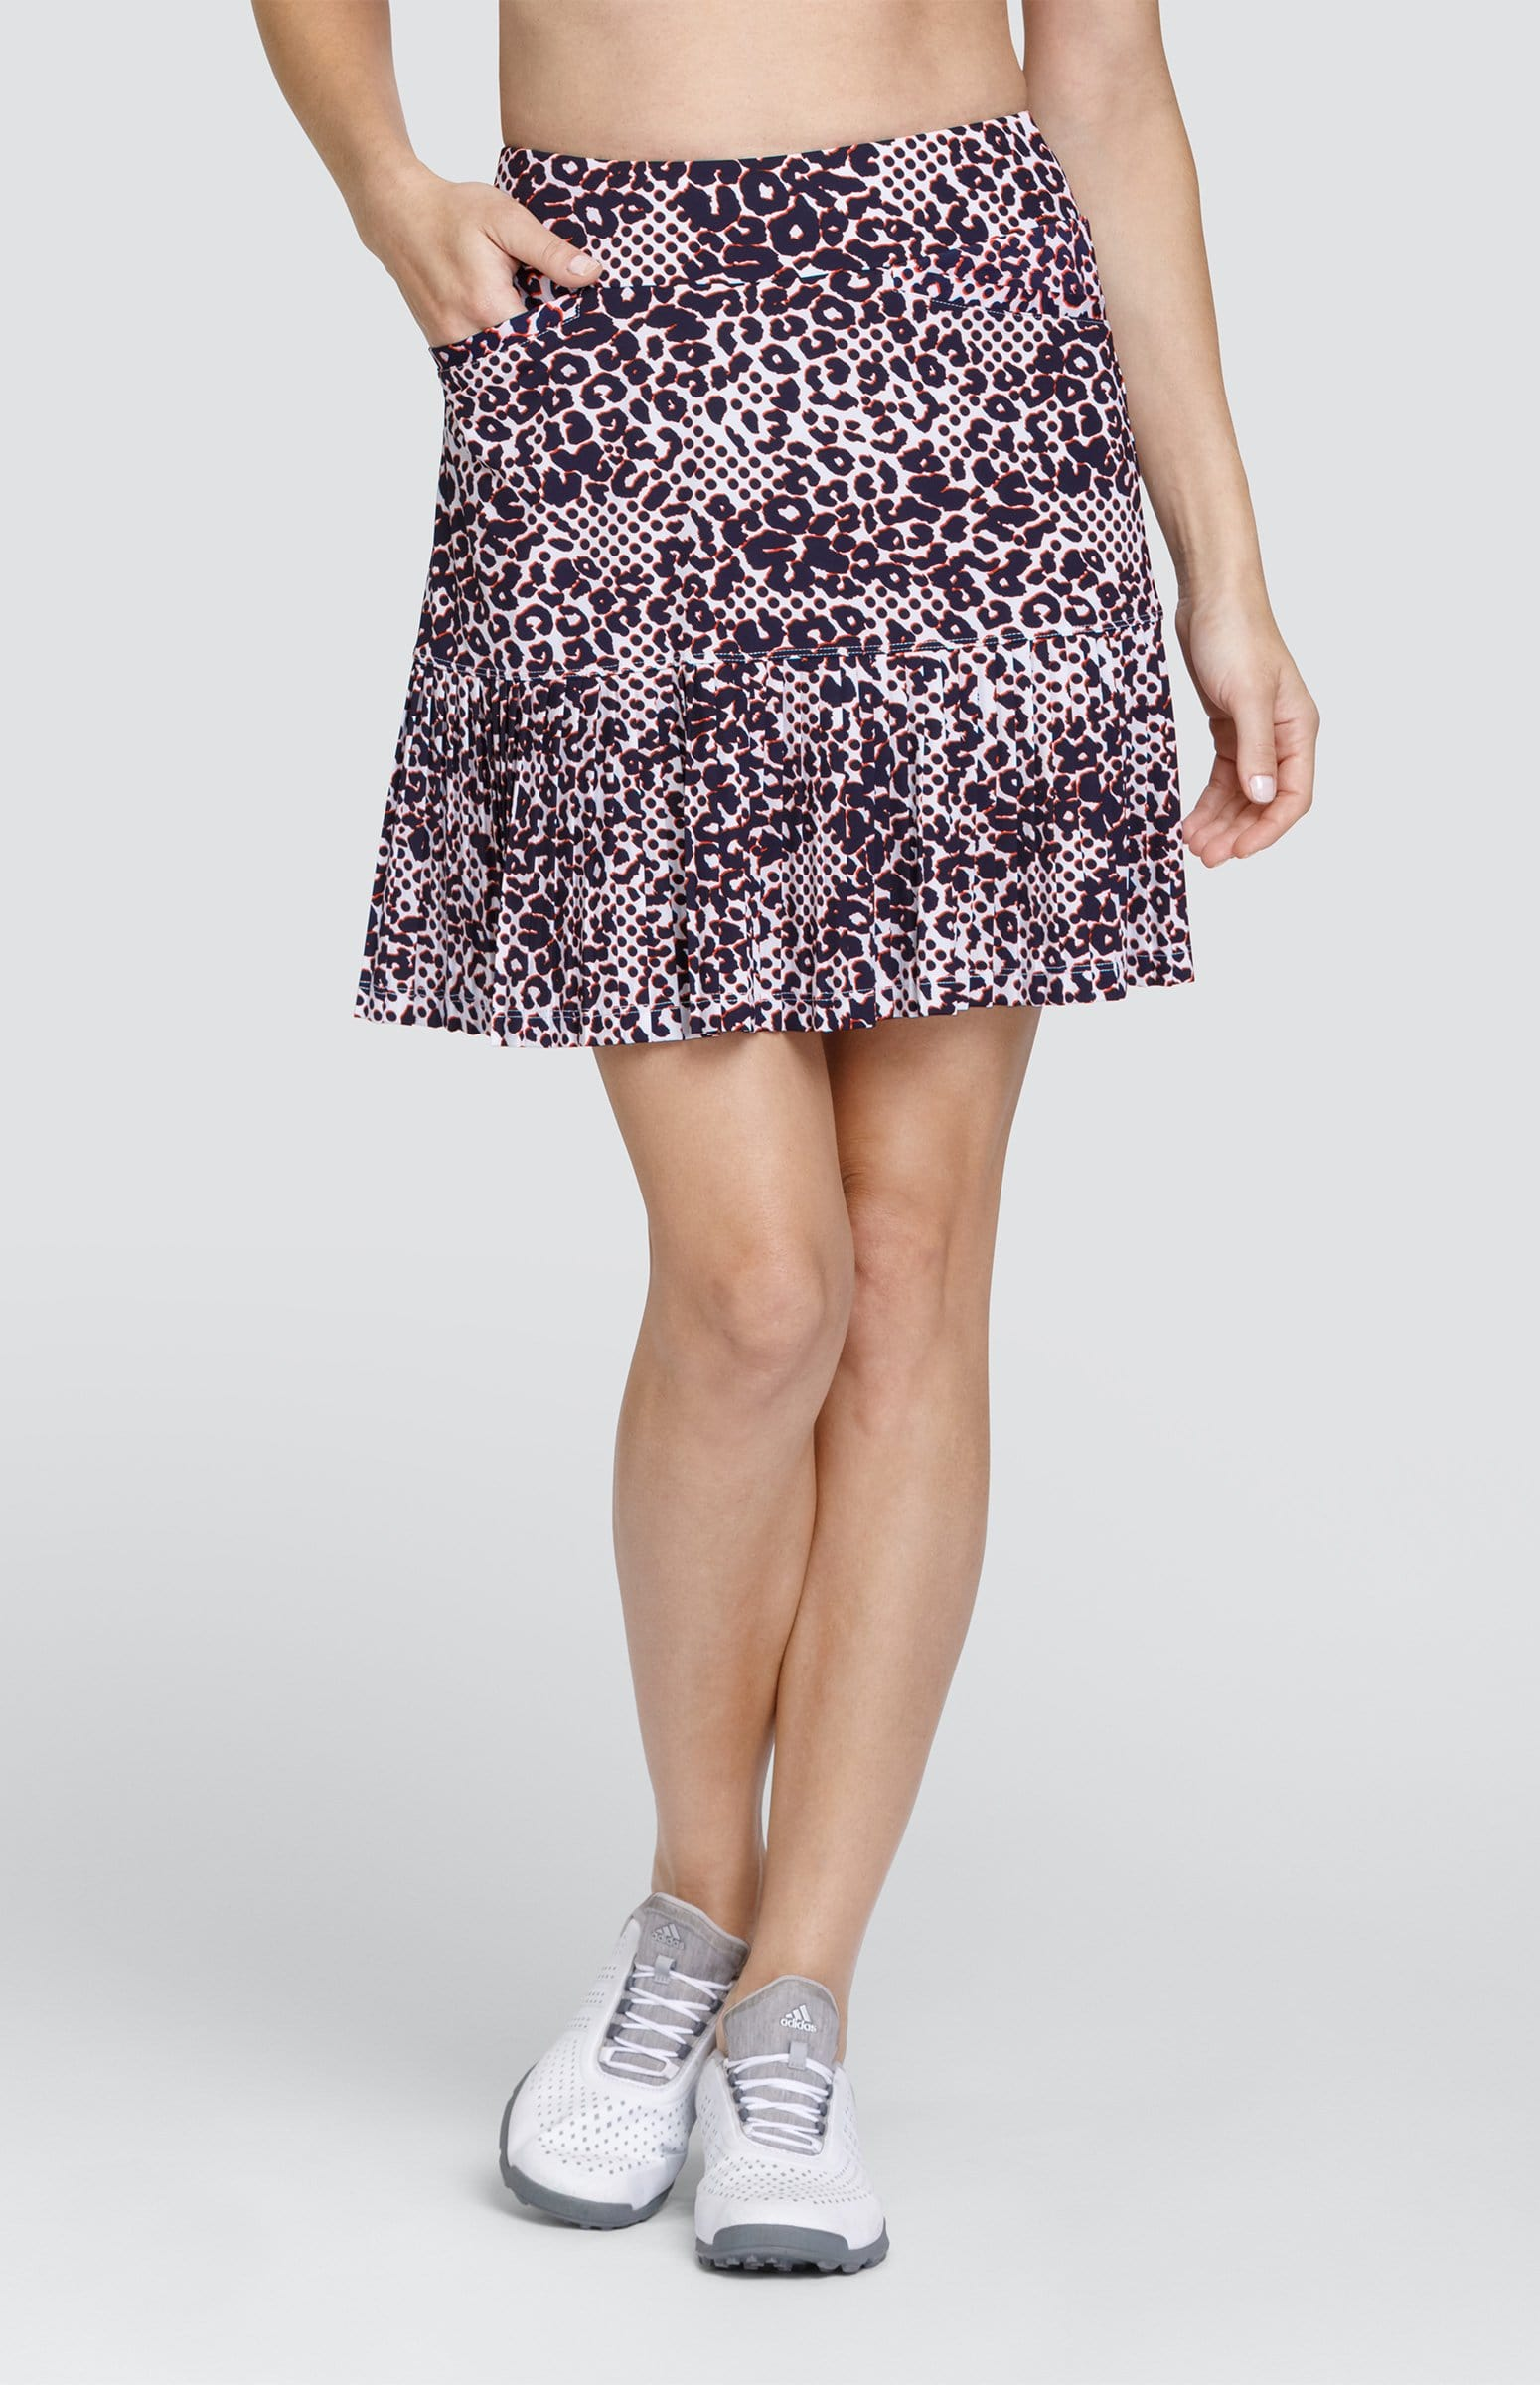 Reagan Skort - Cheetah Dot - 18